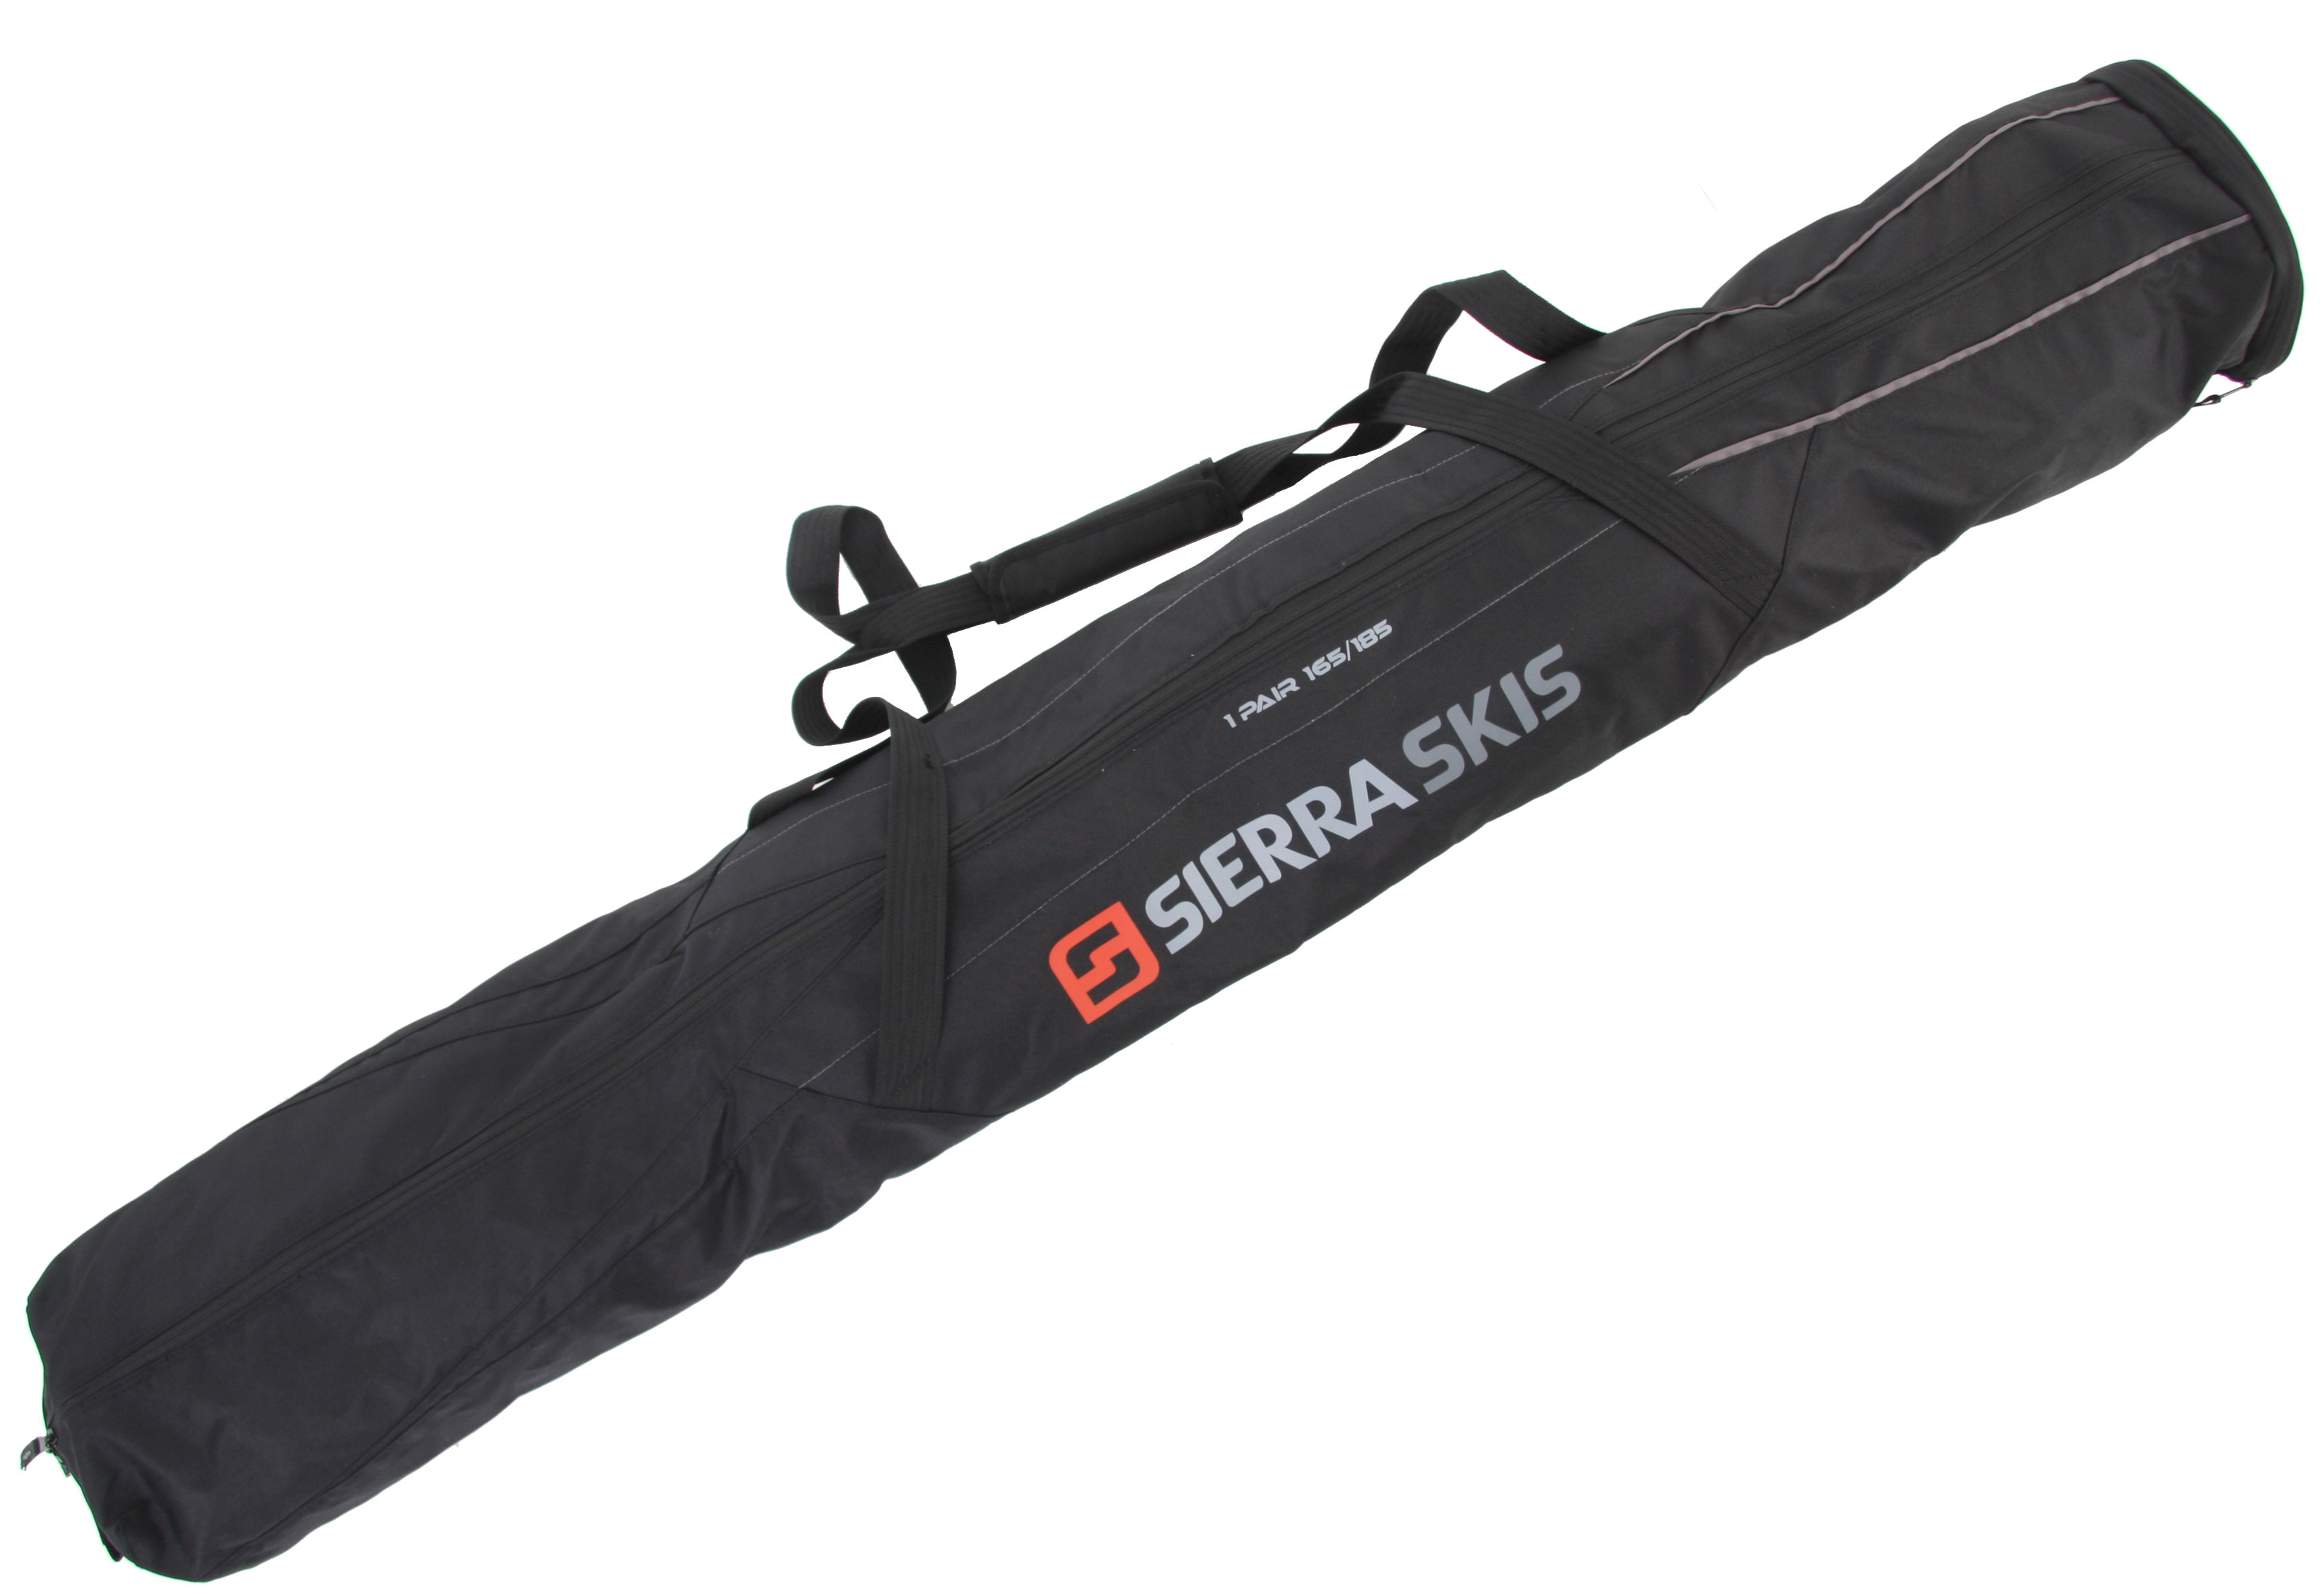 Ski Key Features of the Sierra Logo Ski Bag: Long dual carrying straps Hold pair of skis Non-padded 165-185cm - $24.95